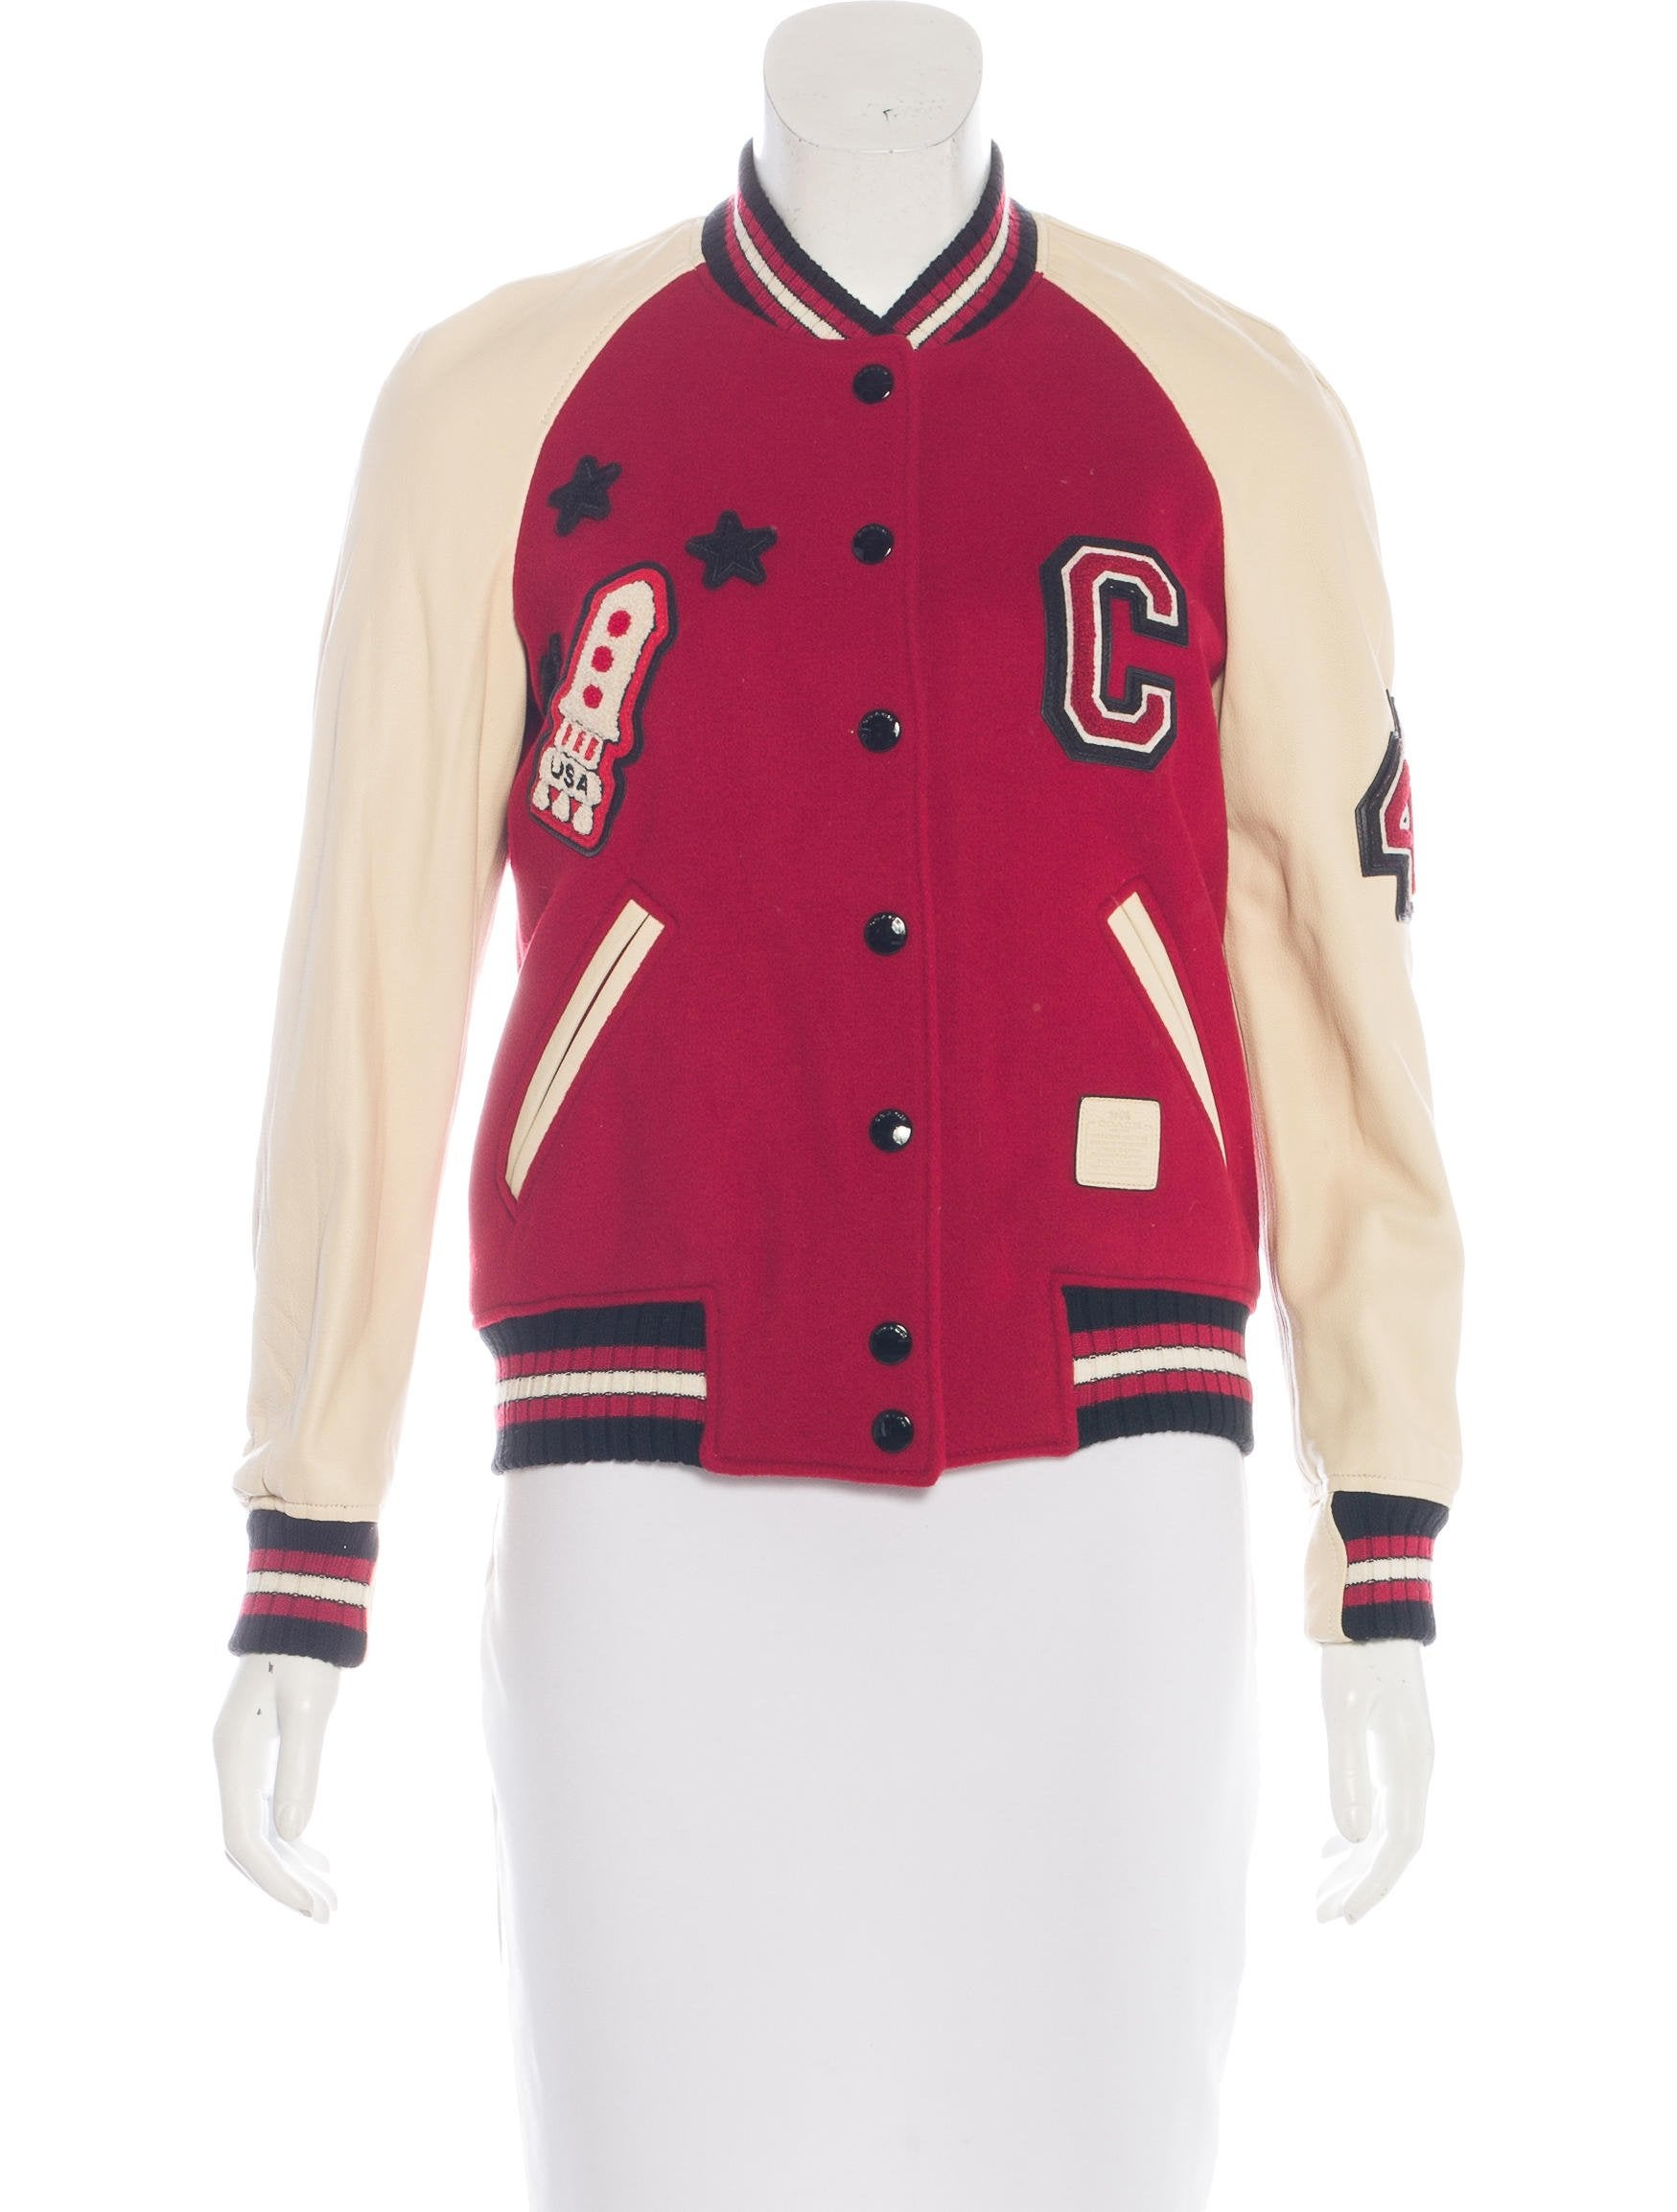 Coach 1941 Wool Classic Varsity Jacket Clothing  : CHNFO200691enlarged from www.therealreal.com size 1749 x 2307 jpeg 201kB